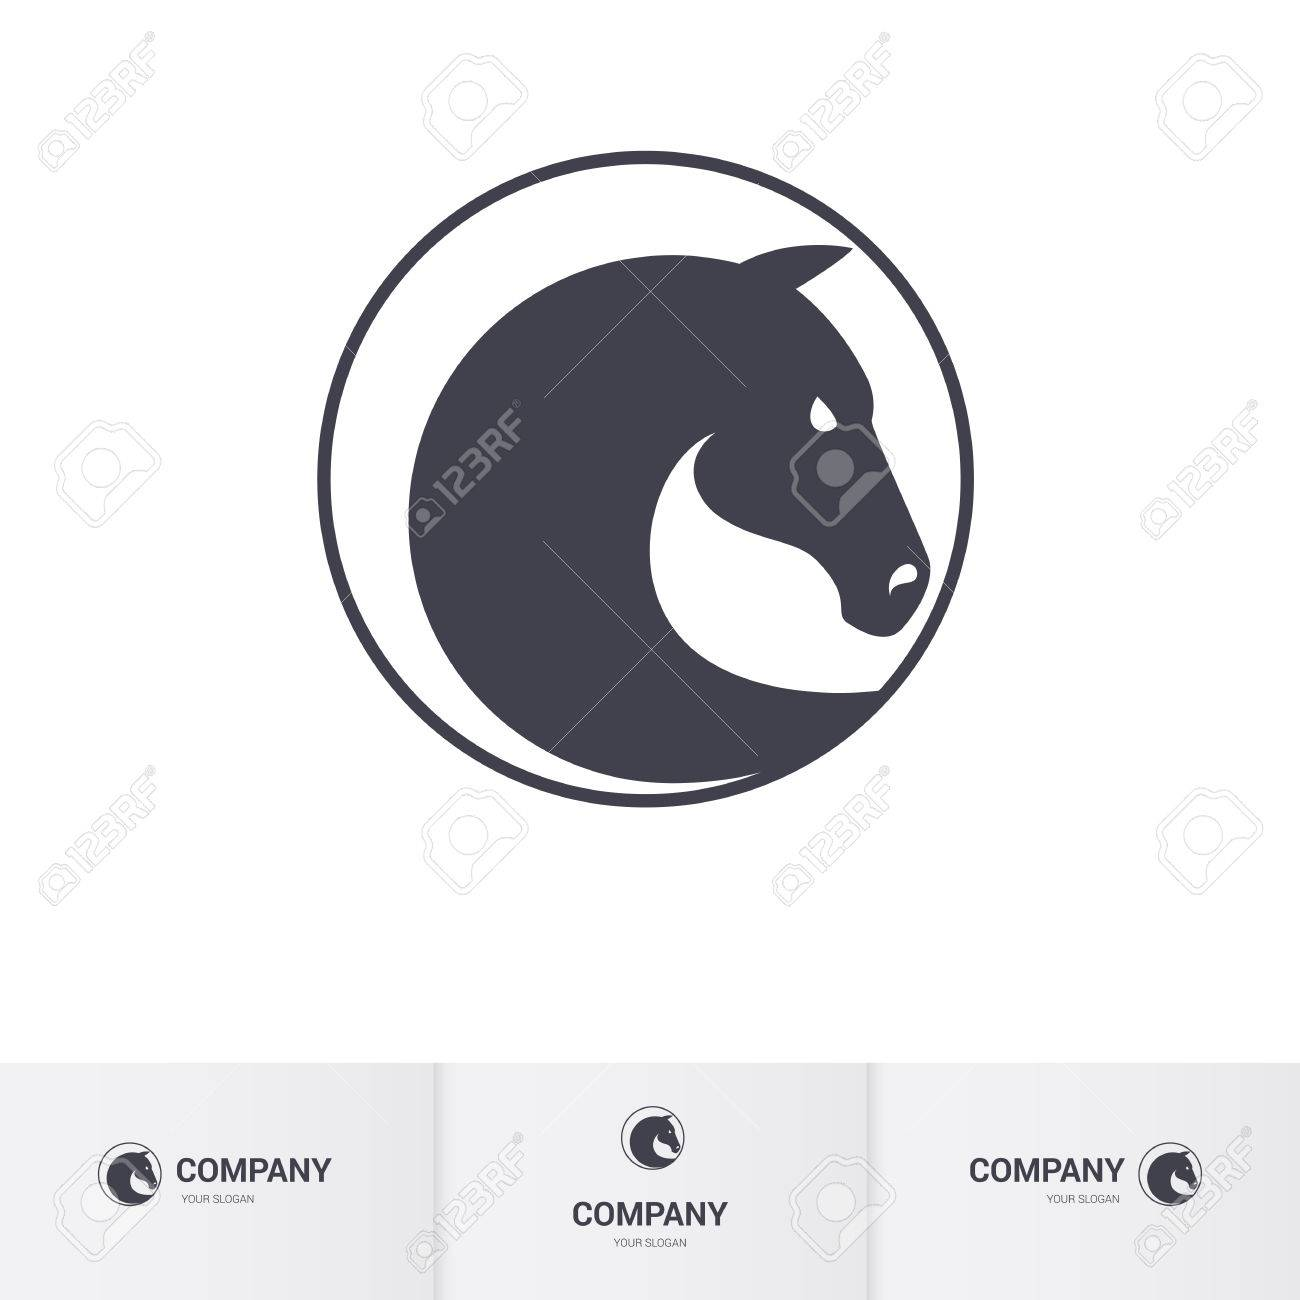 Stylized Dark Horse Head In Circle For Mascot Template Royalty Free